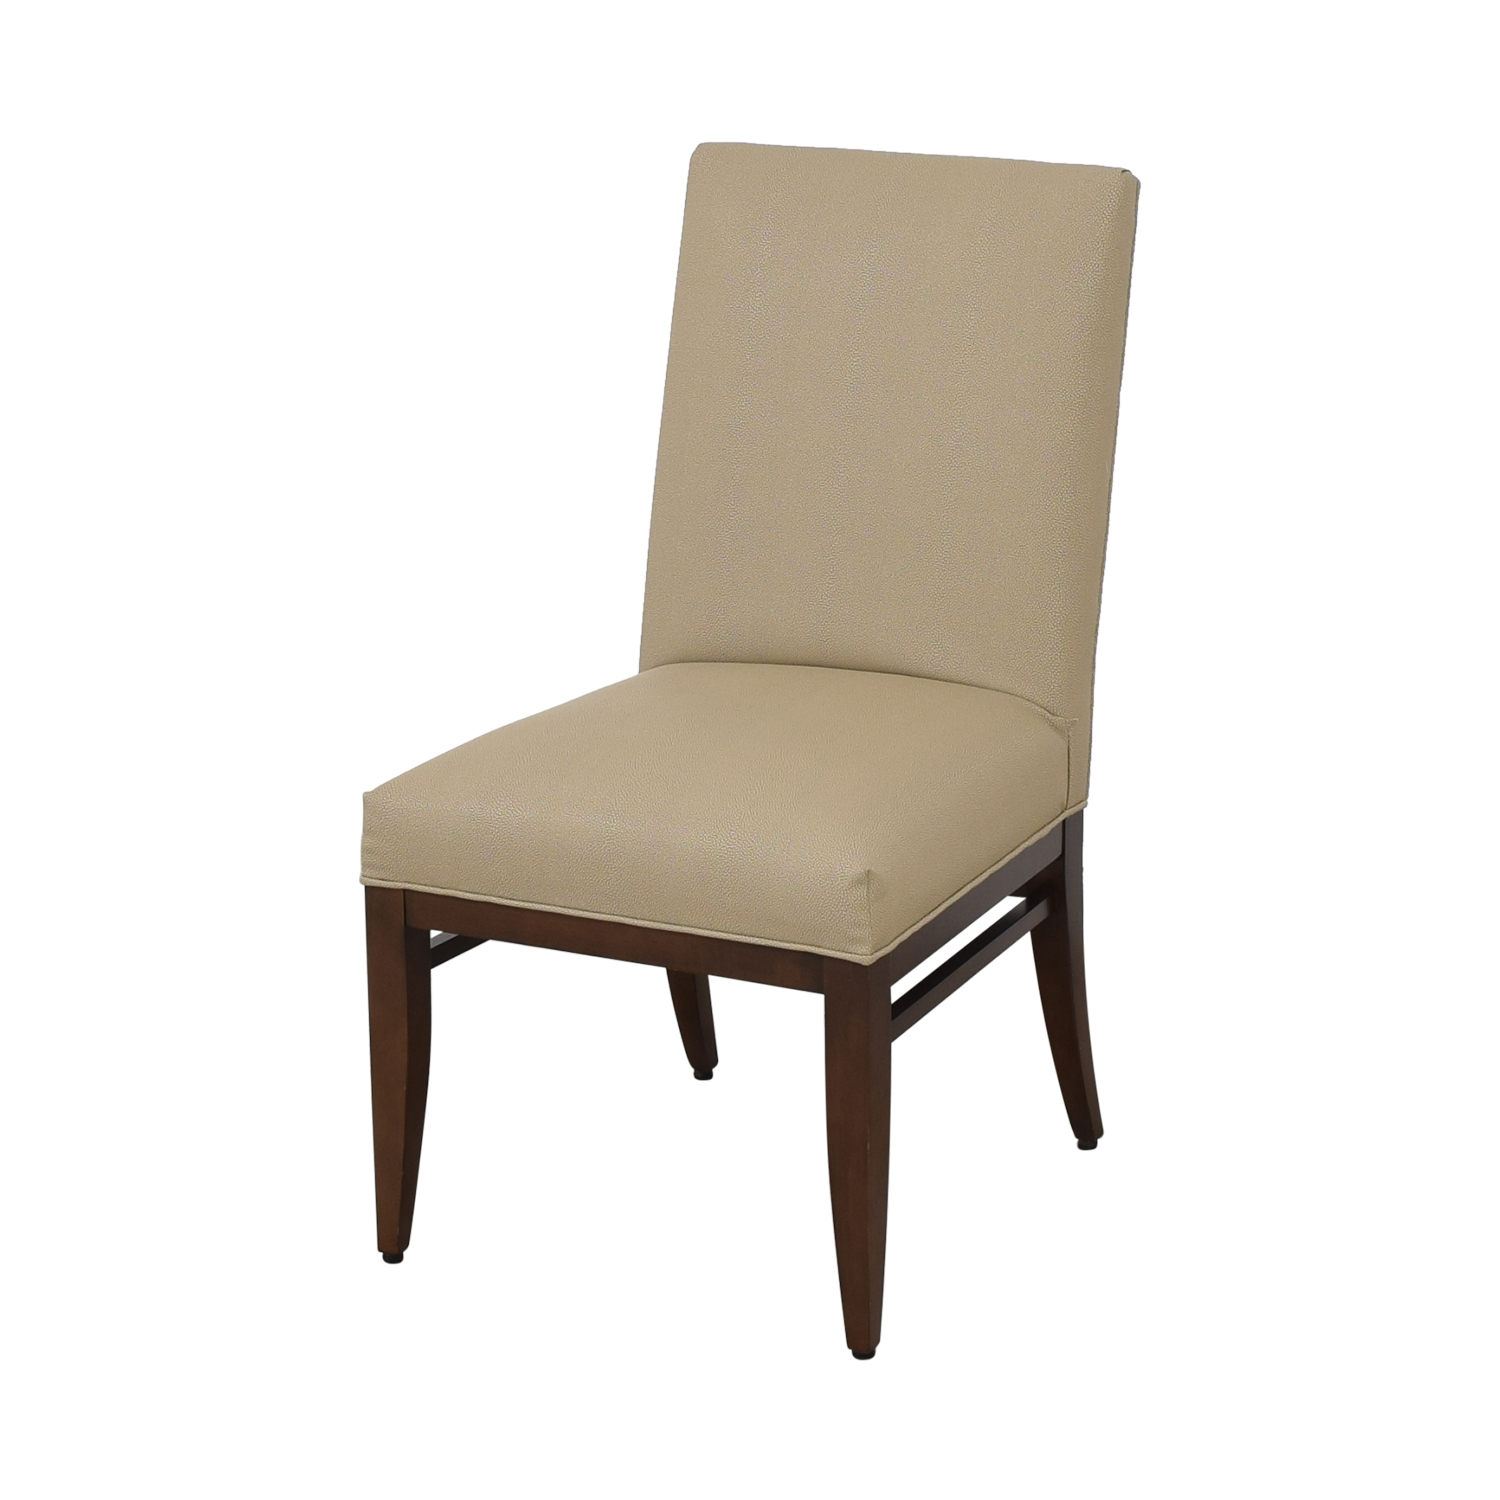 Duralee Duralee Kent Upholstered Dining Chairs nj